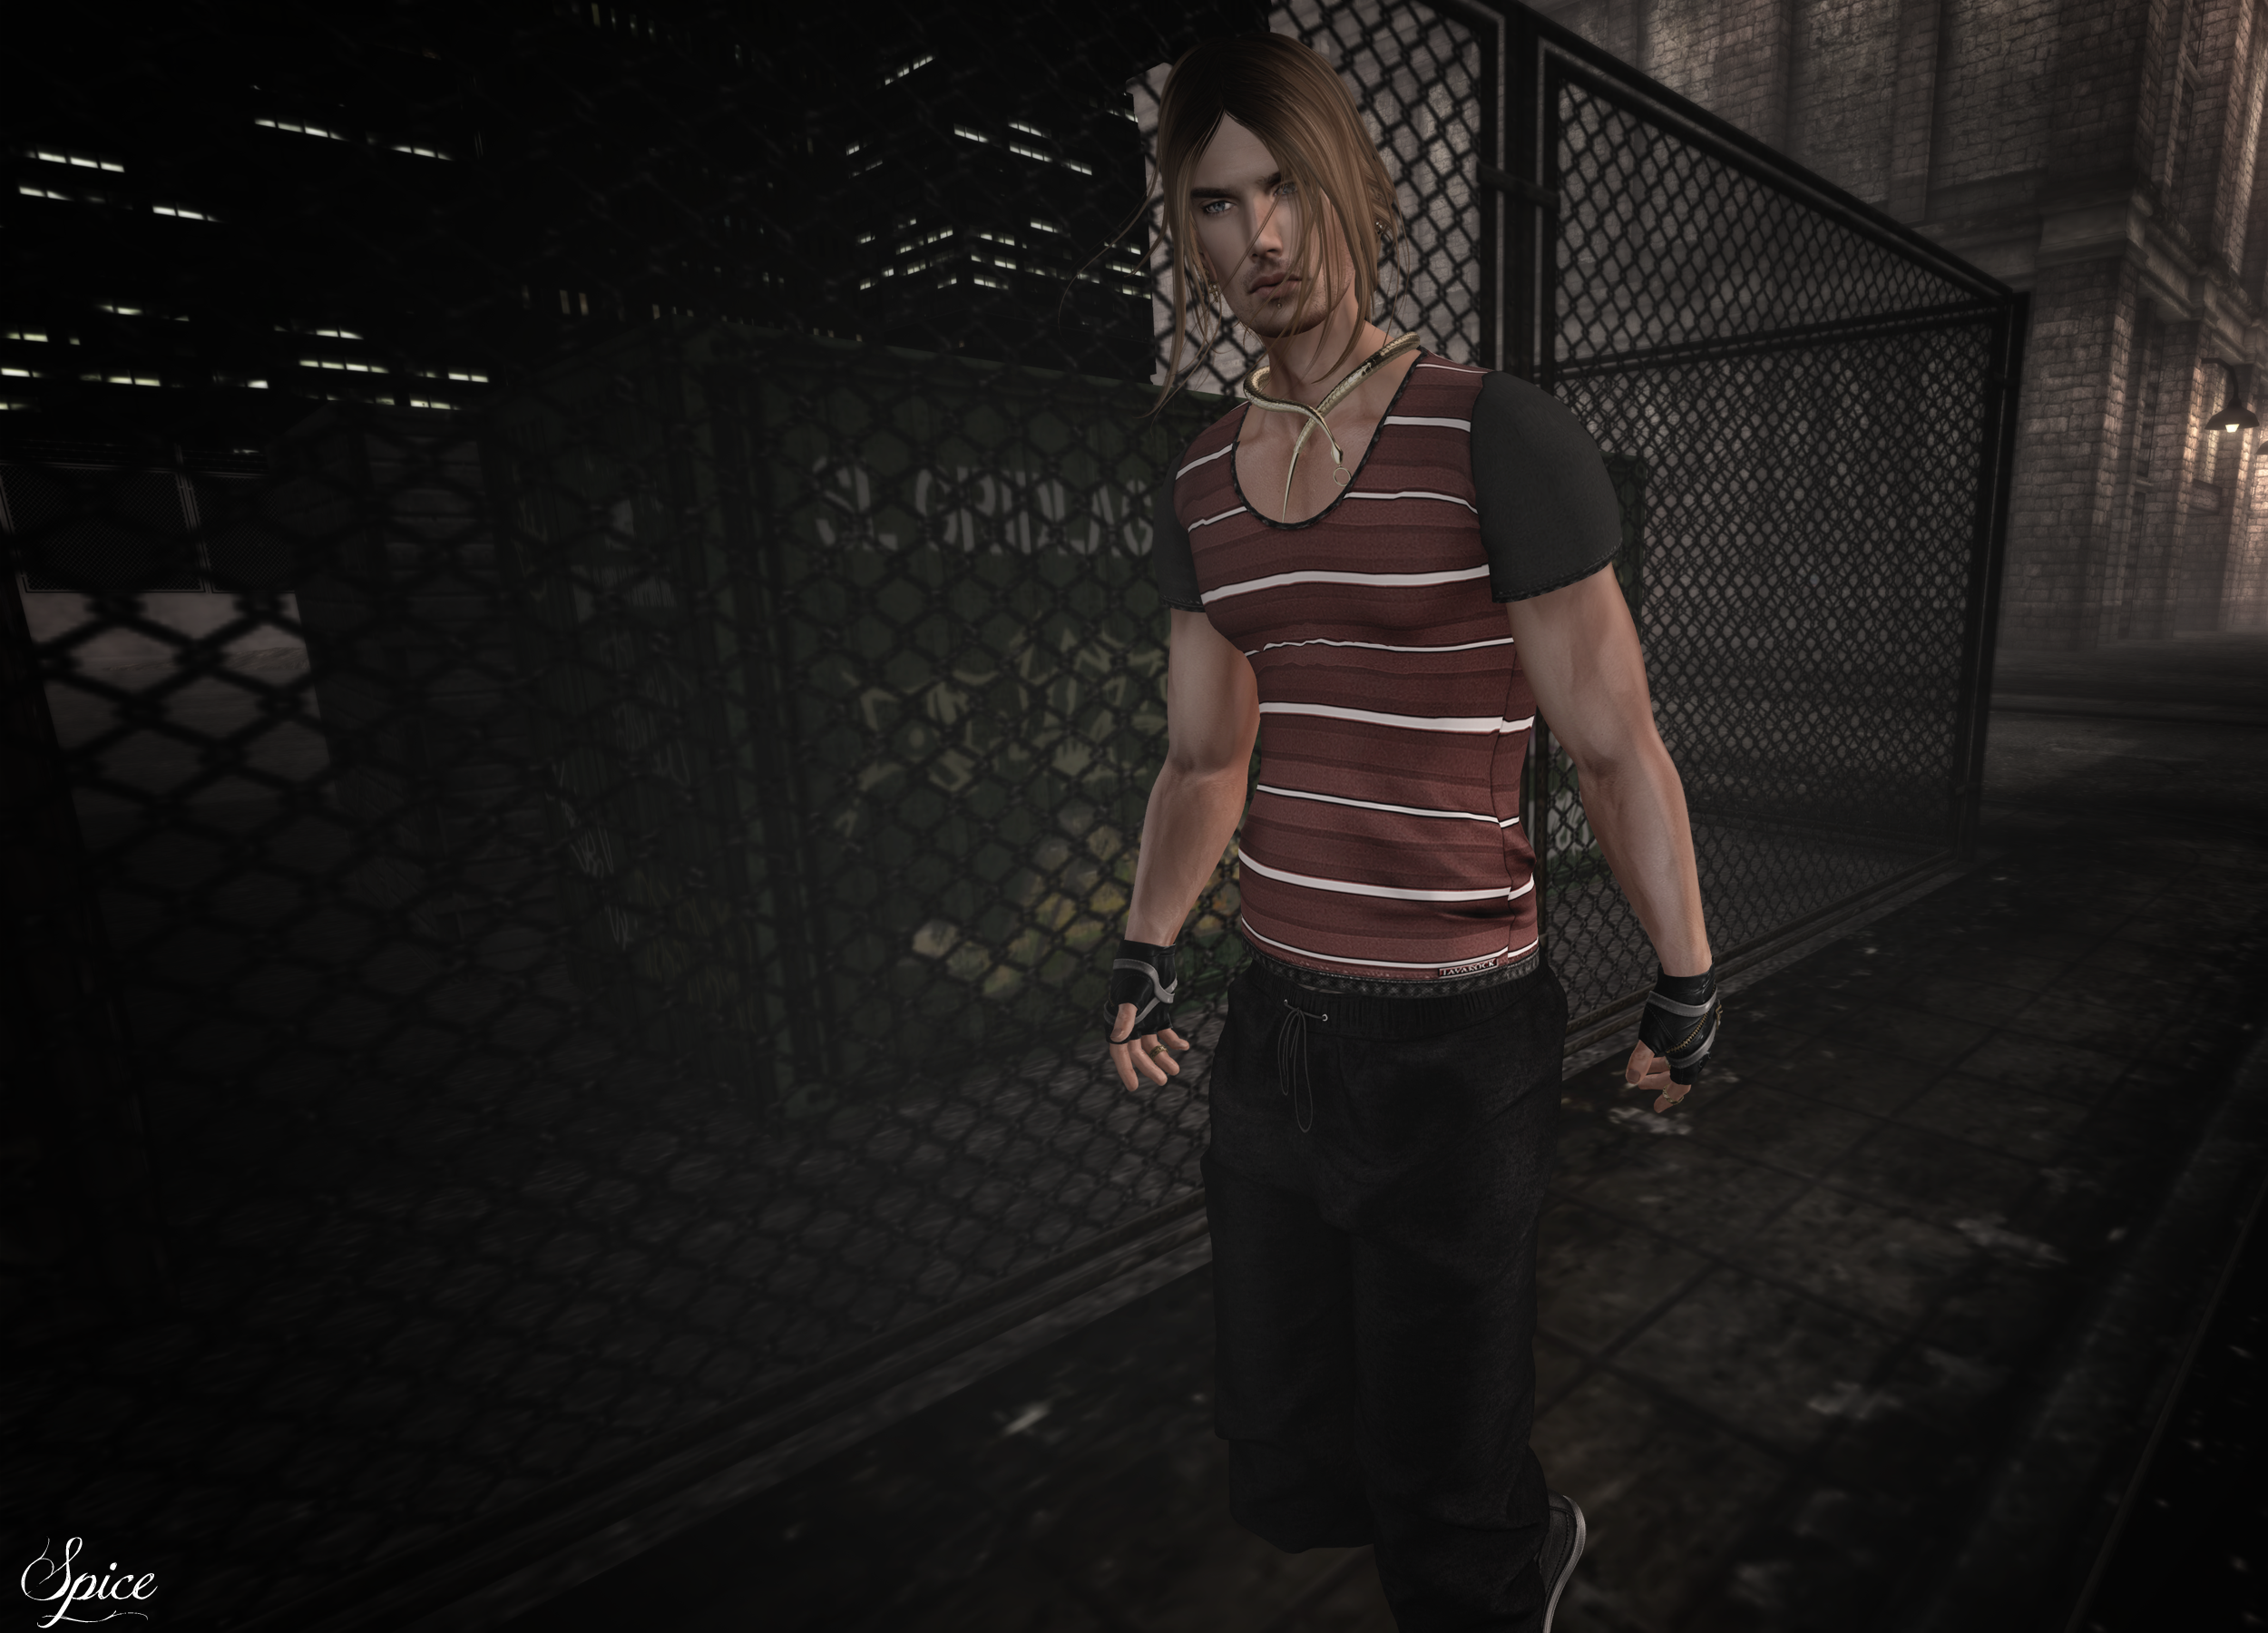 Spice wearing Egoisme EXMACHINA Male Sweatpants .:LAVAROCK CREATIONS:. David Male T-Shirt and -:zk:- Zara Kent - Snake Collar @ L'Elite Event